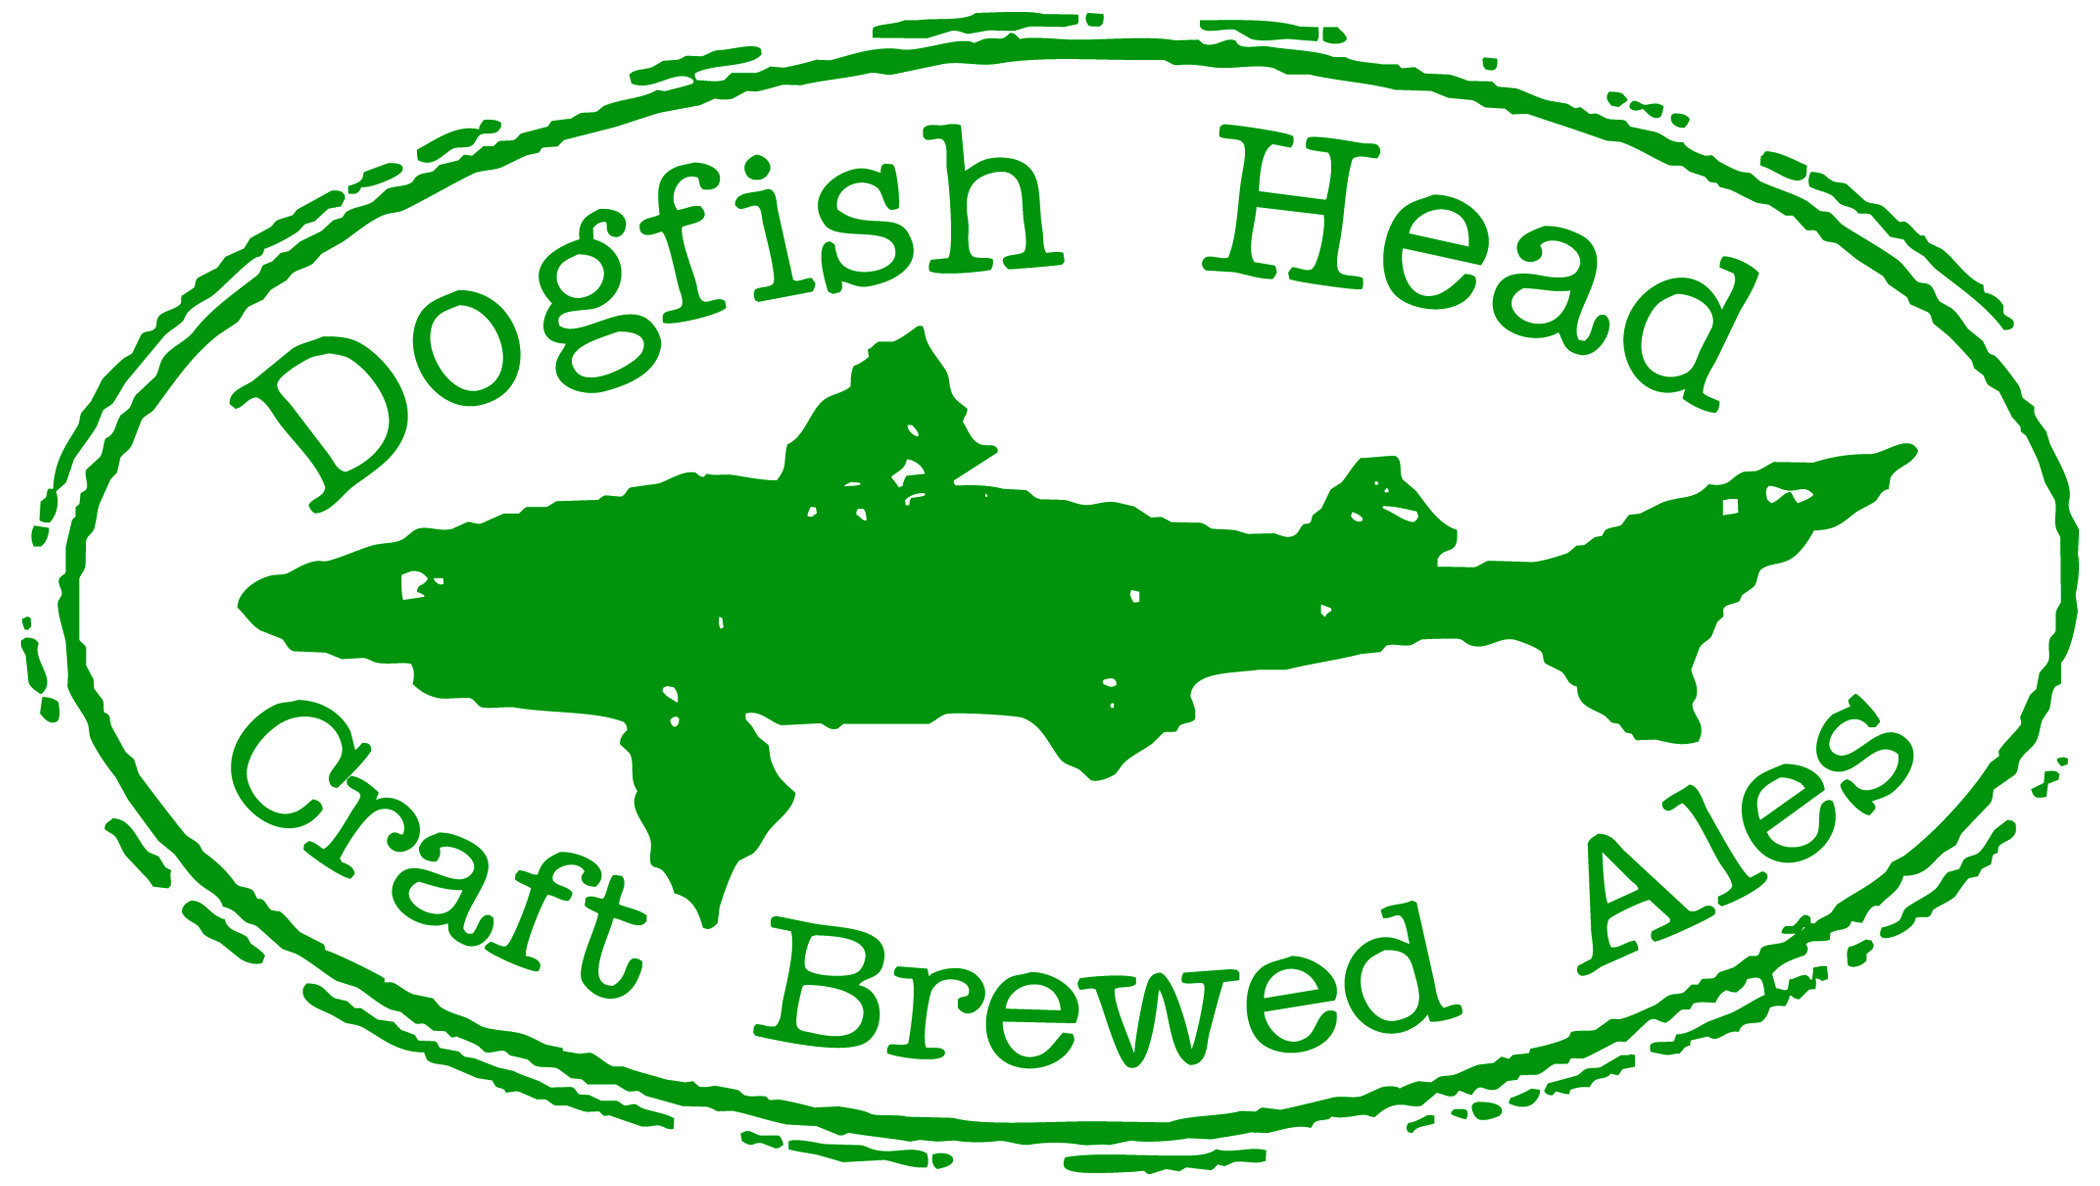 Oysters and Beer, featuring Dogfish Head